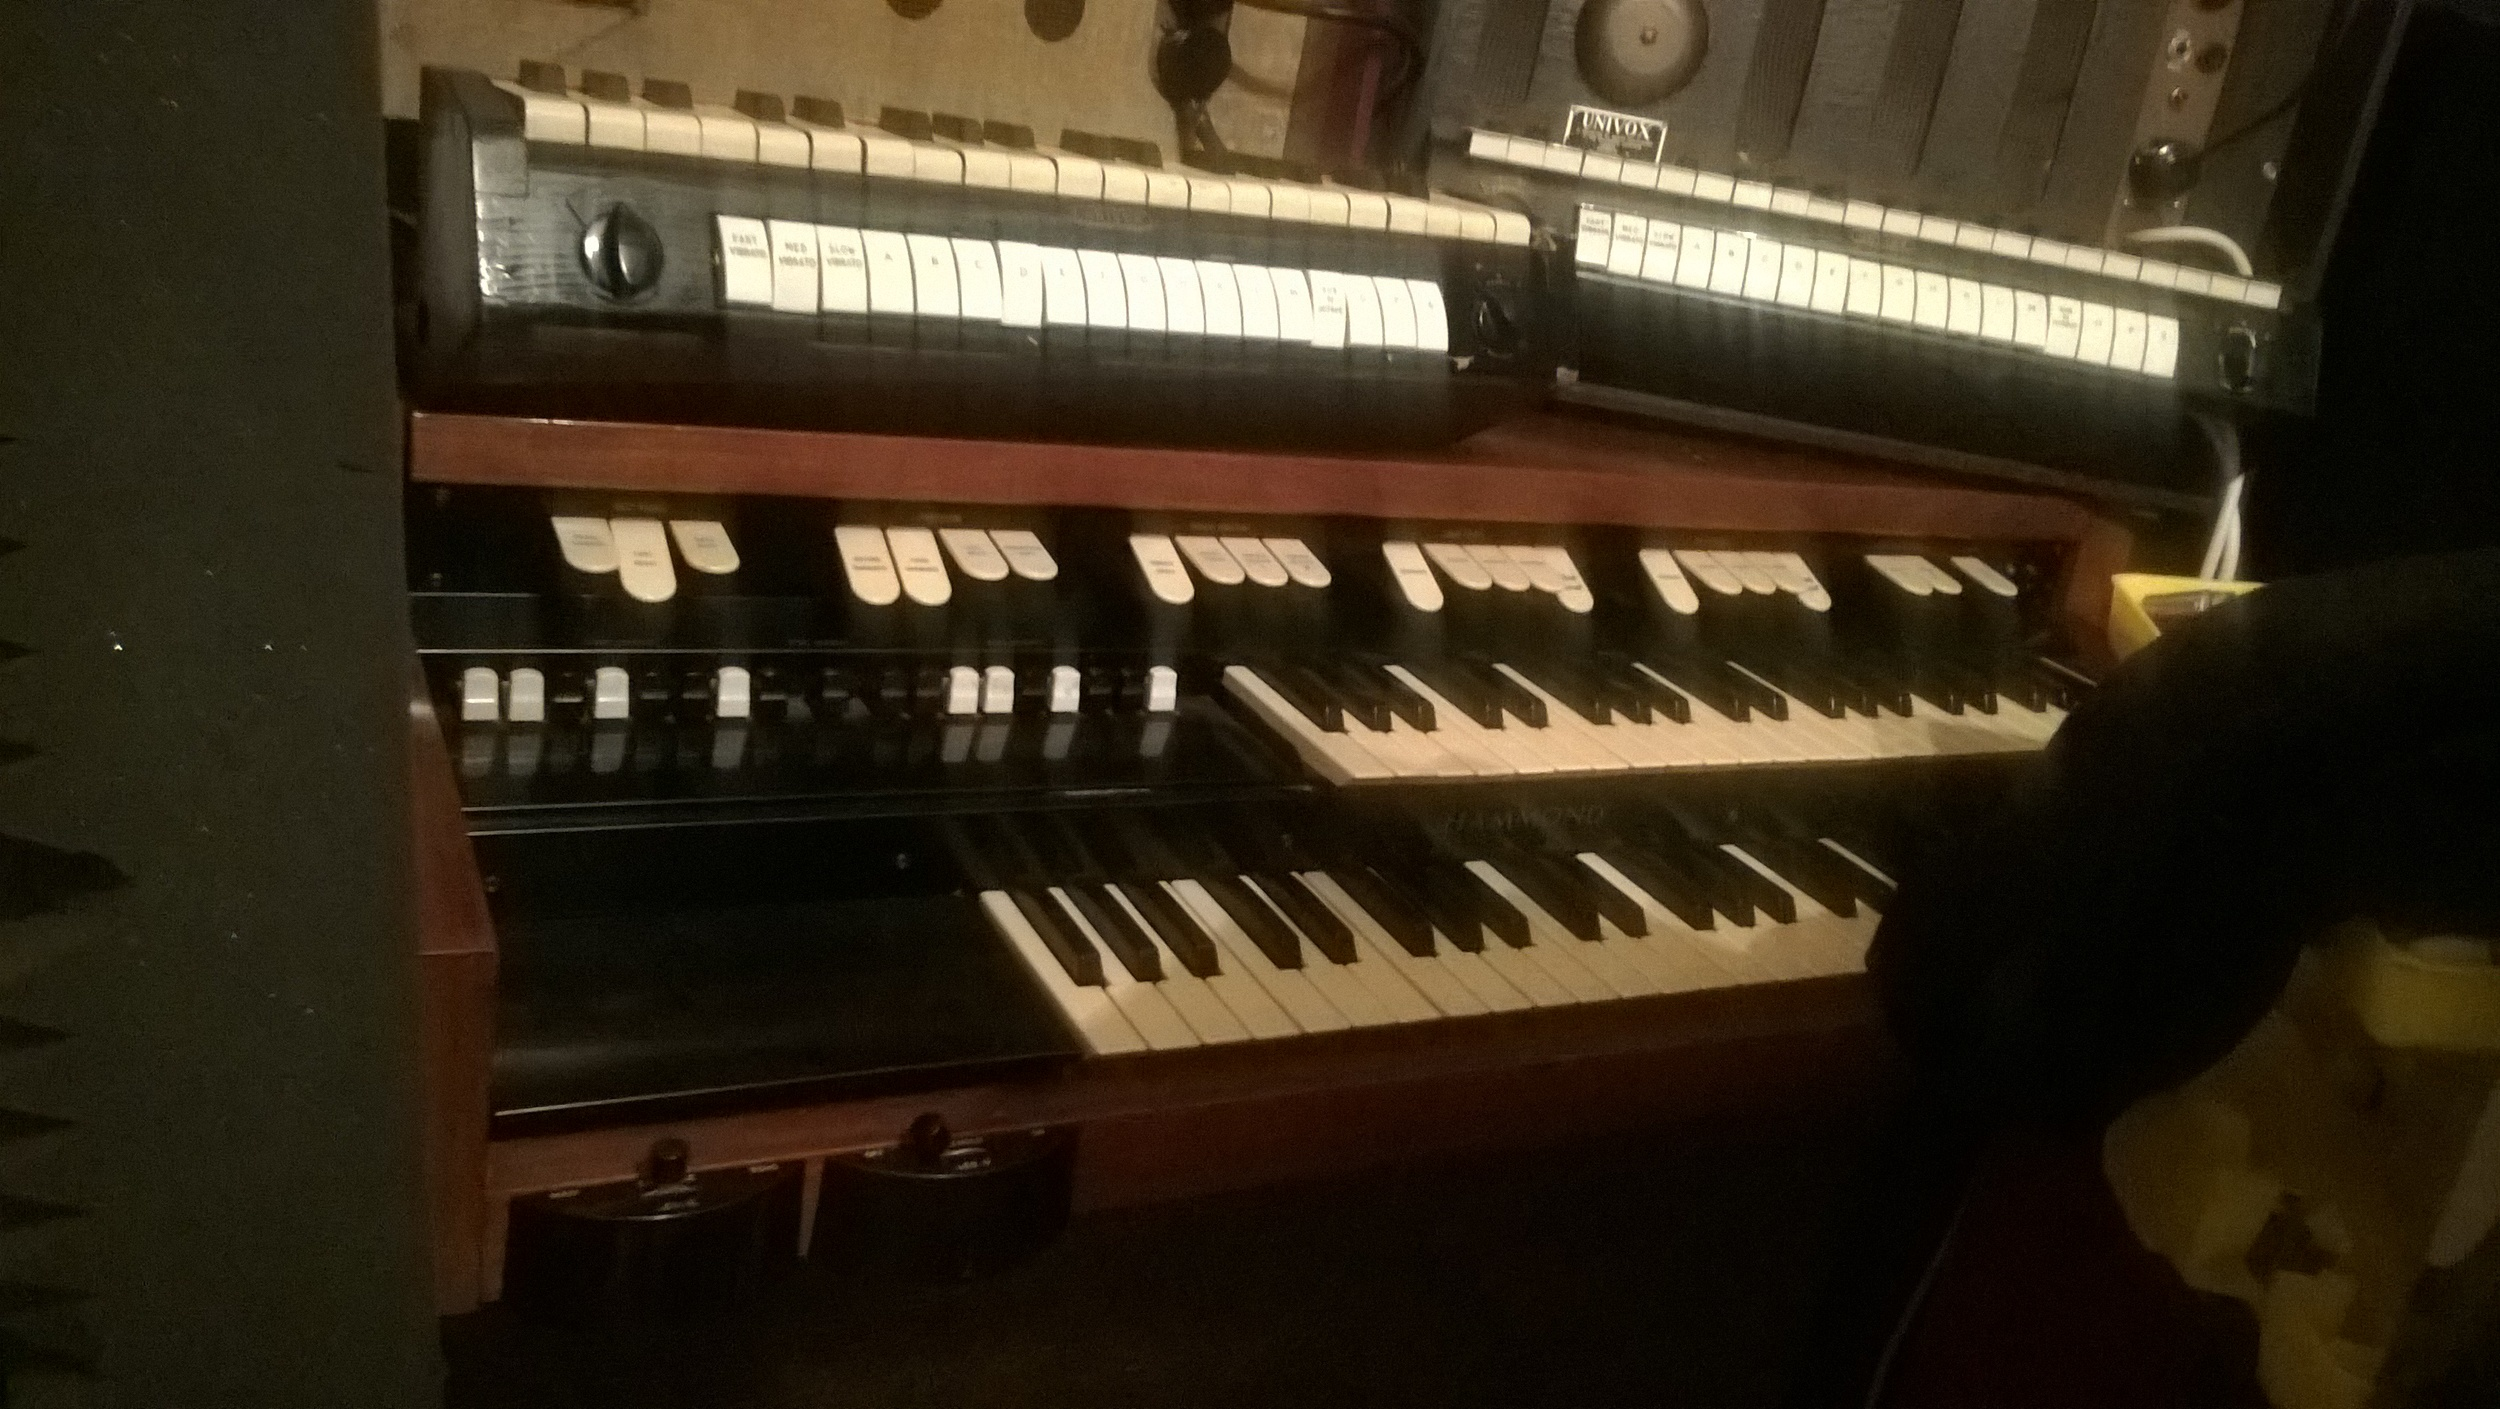 The Vintage Keys Hammond M102 (with two 1950s Jennings Univox J6s on top), reputed to have once been owned by the Beatles' Apple Studios in the early 1970s.